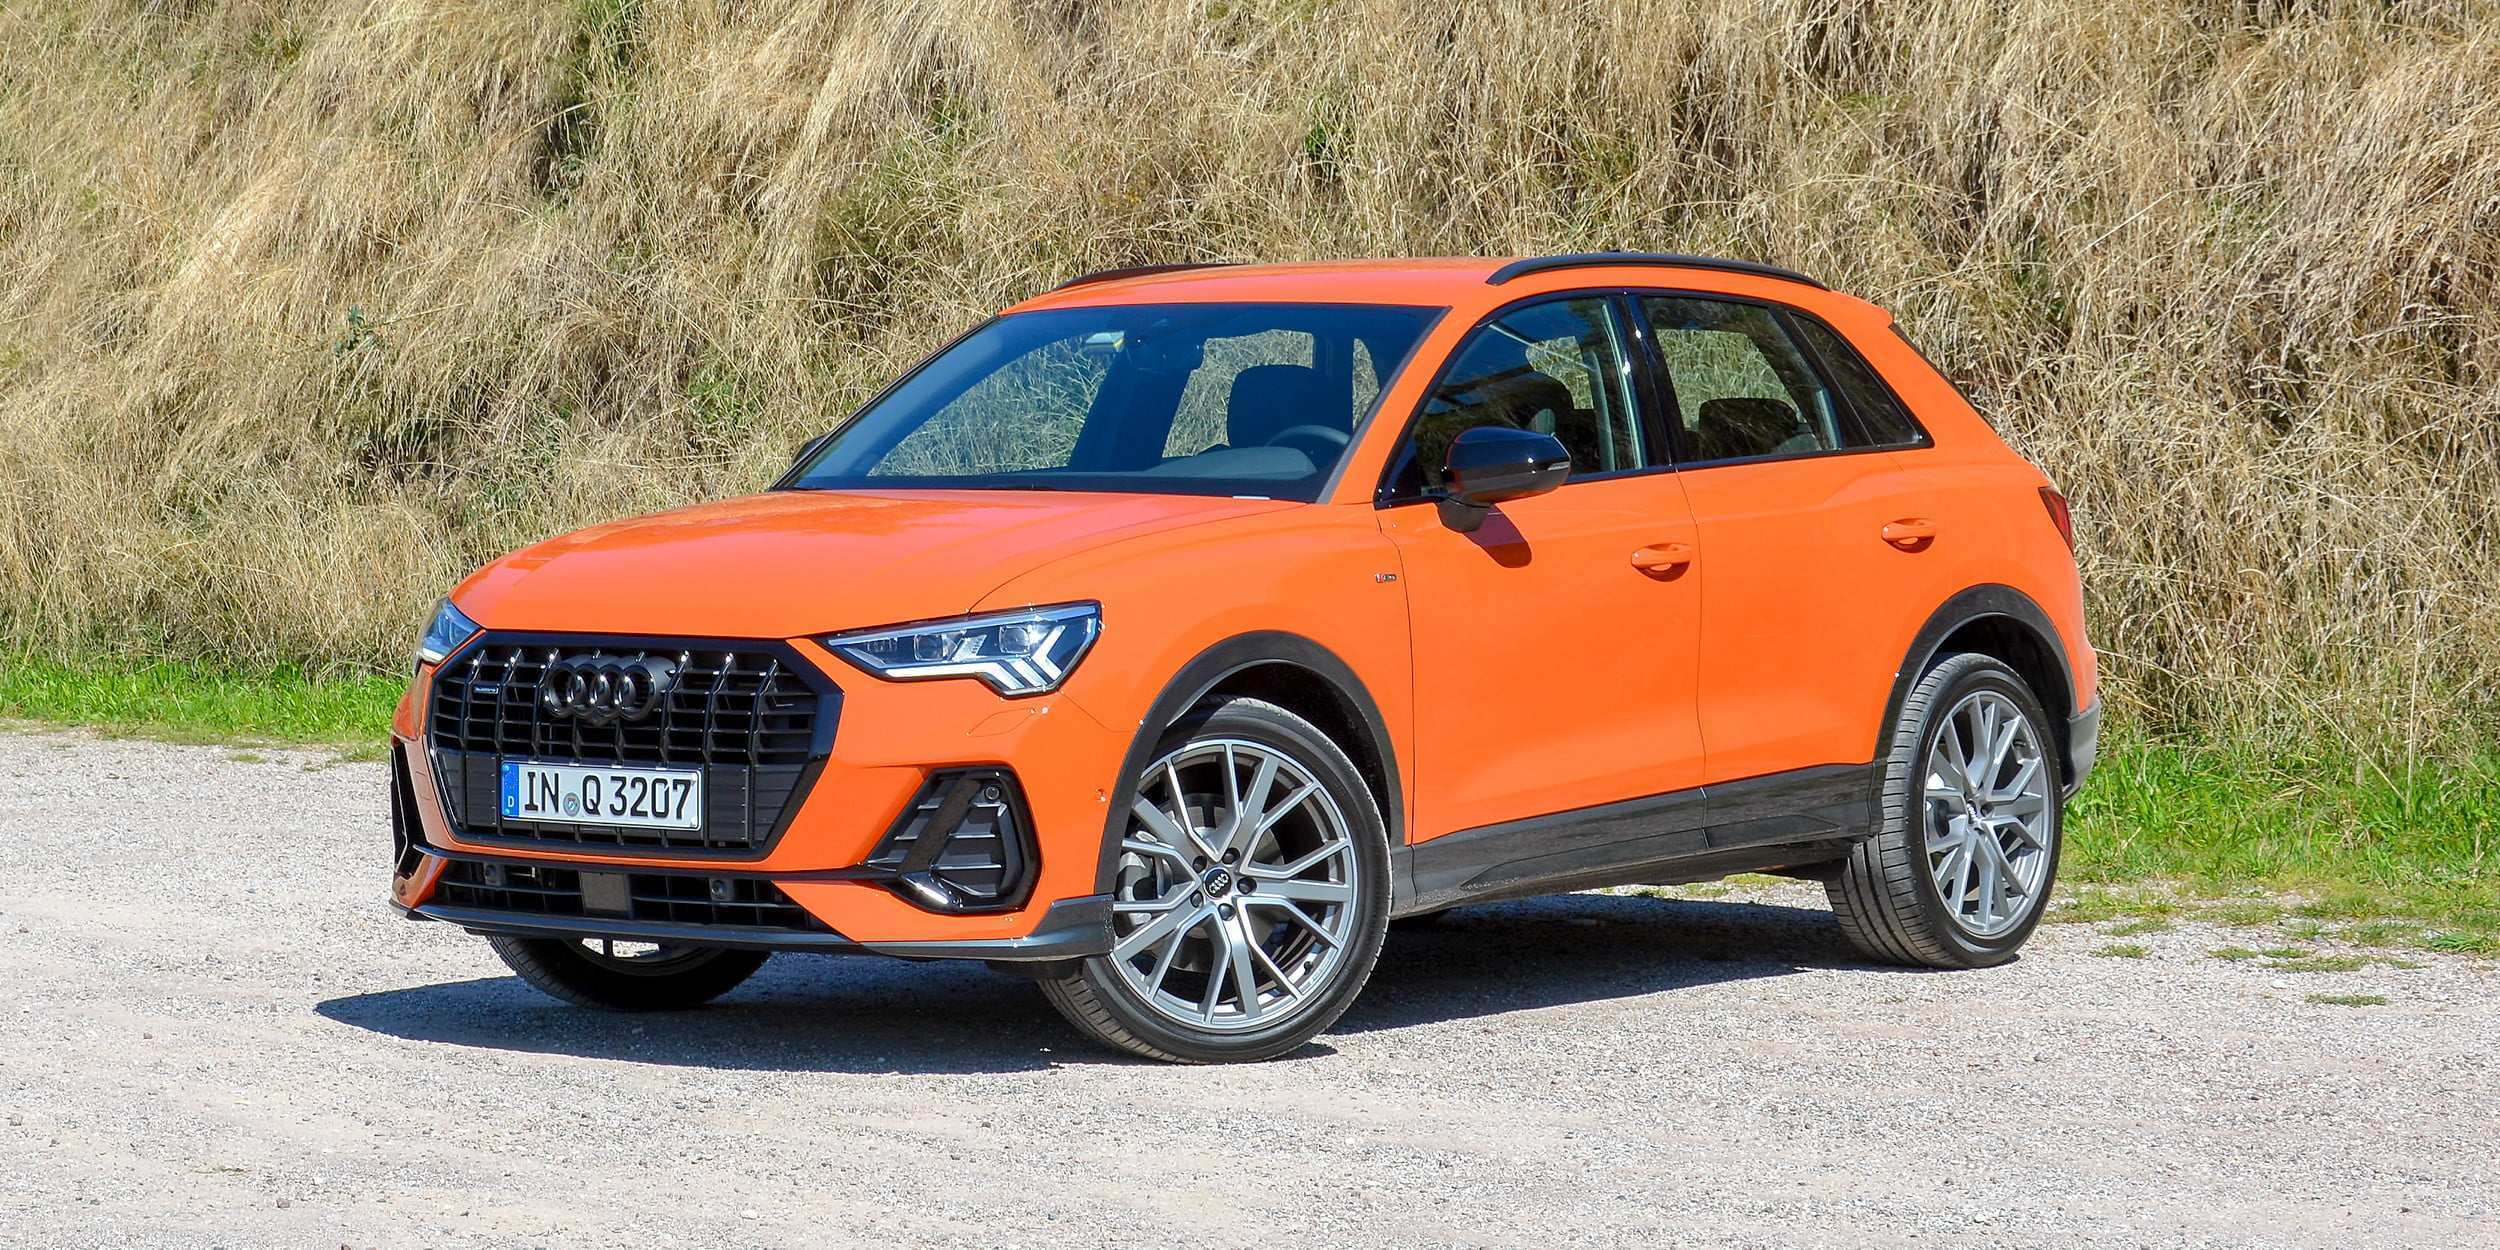 29 All New New Audi Q3 2019 Price First Drive Interior with New Audi Q3 2019 Price First Drive